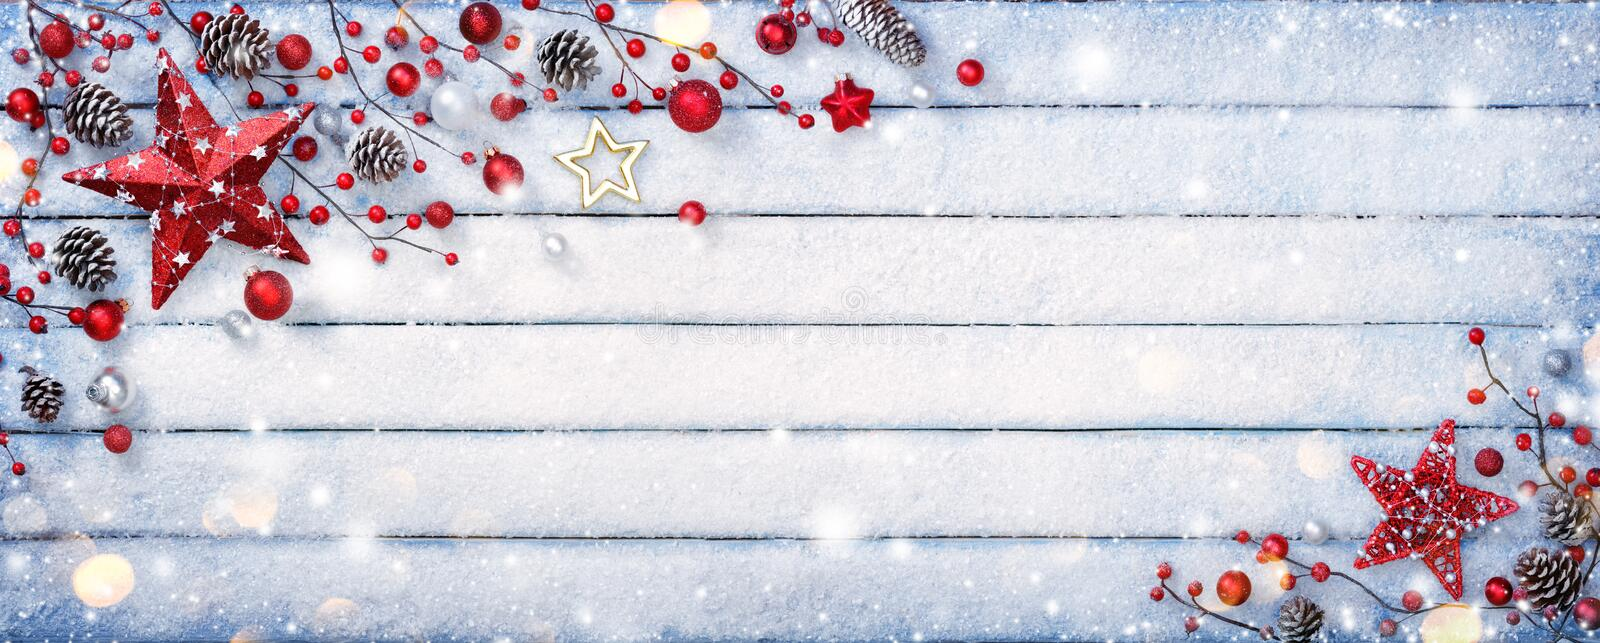 Christmas Ornament On Wooden Background royalty free stock photo